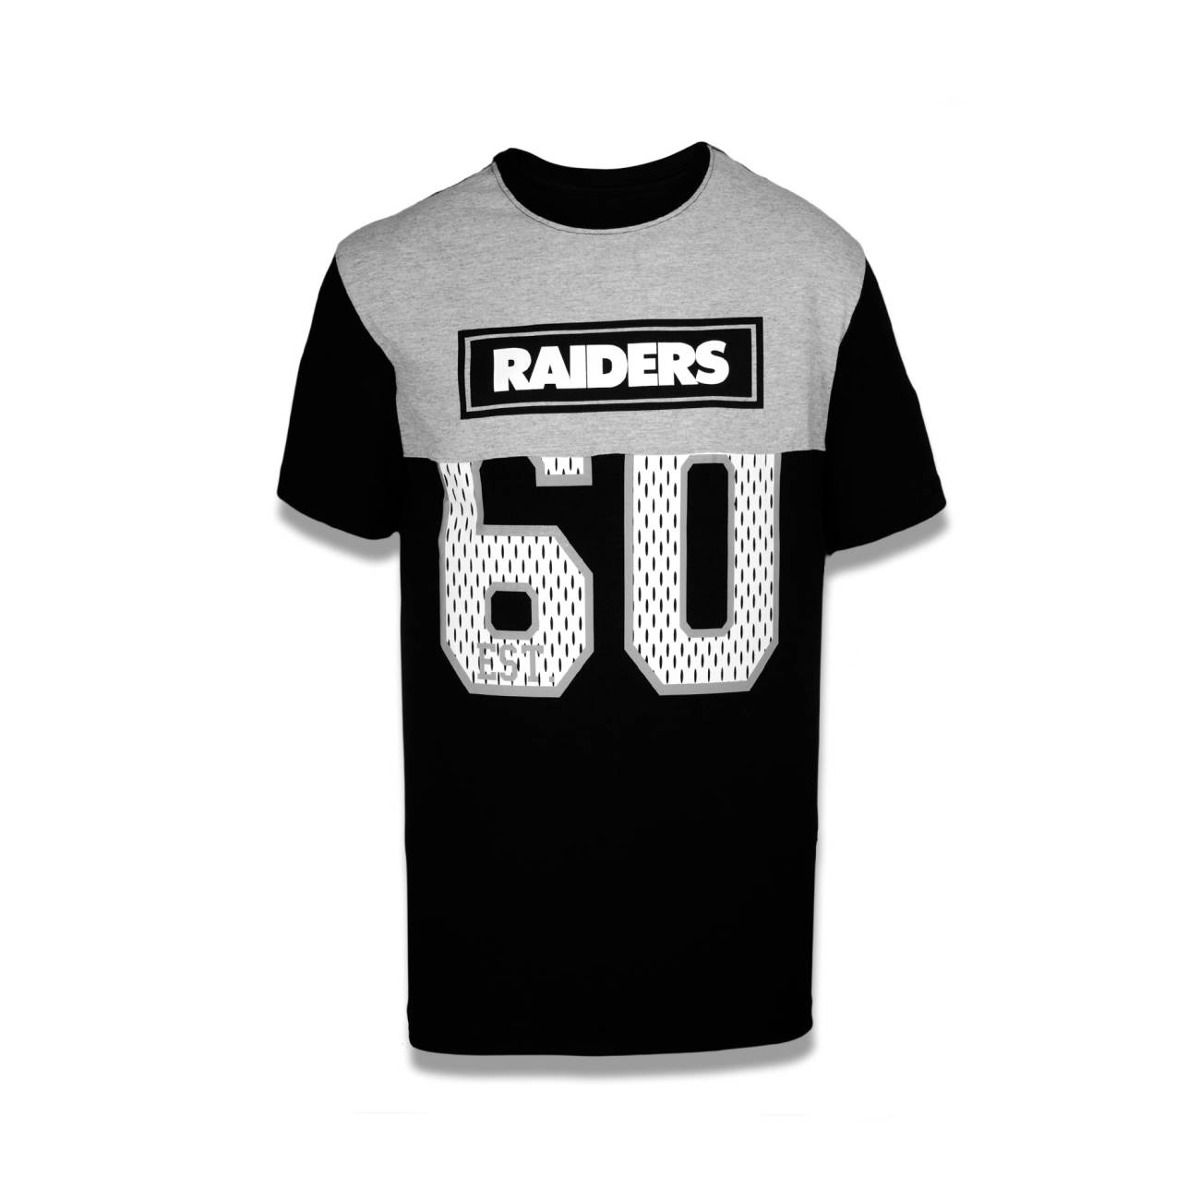 0ef509e6ff camiseta oakland raiders nfl new era 36266. Carregando zoom.